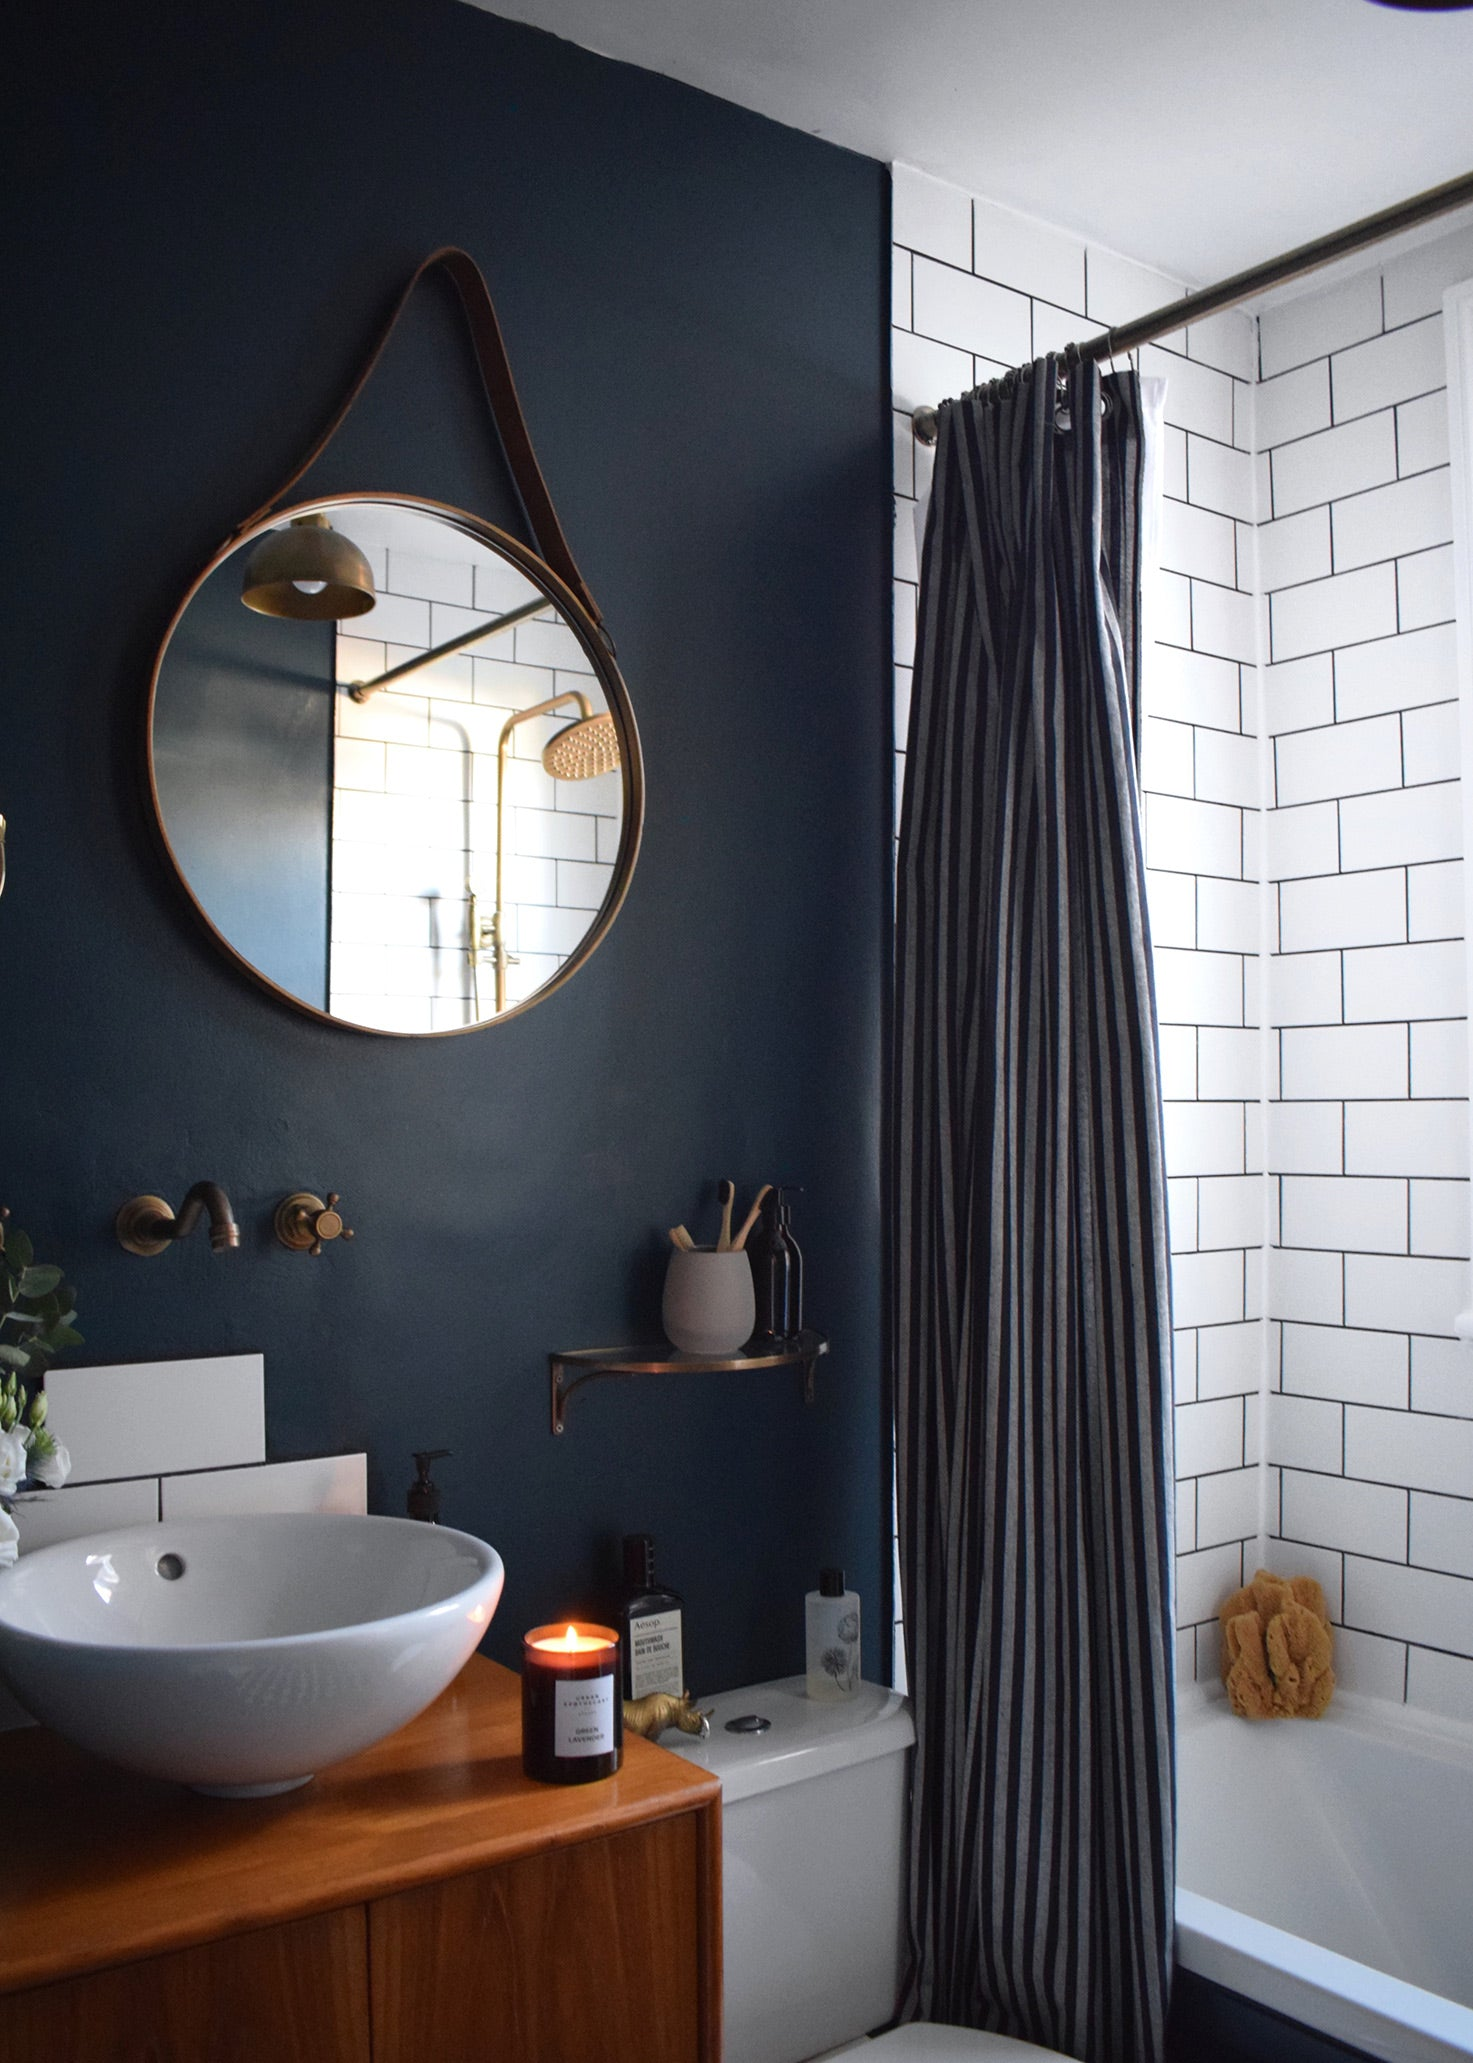 Stunning bathroom with white tiles, dark wall, round mirror, candles and other accessories